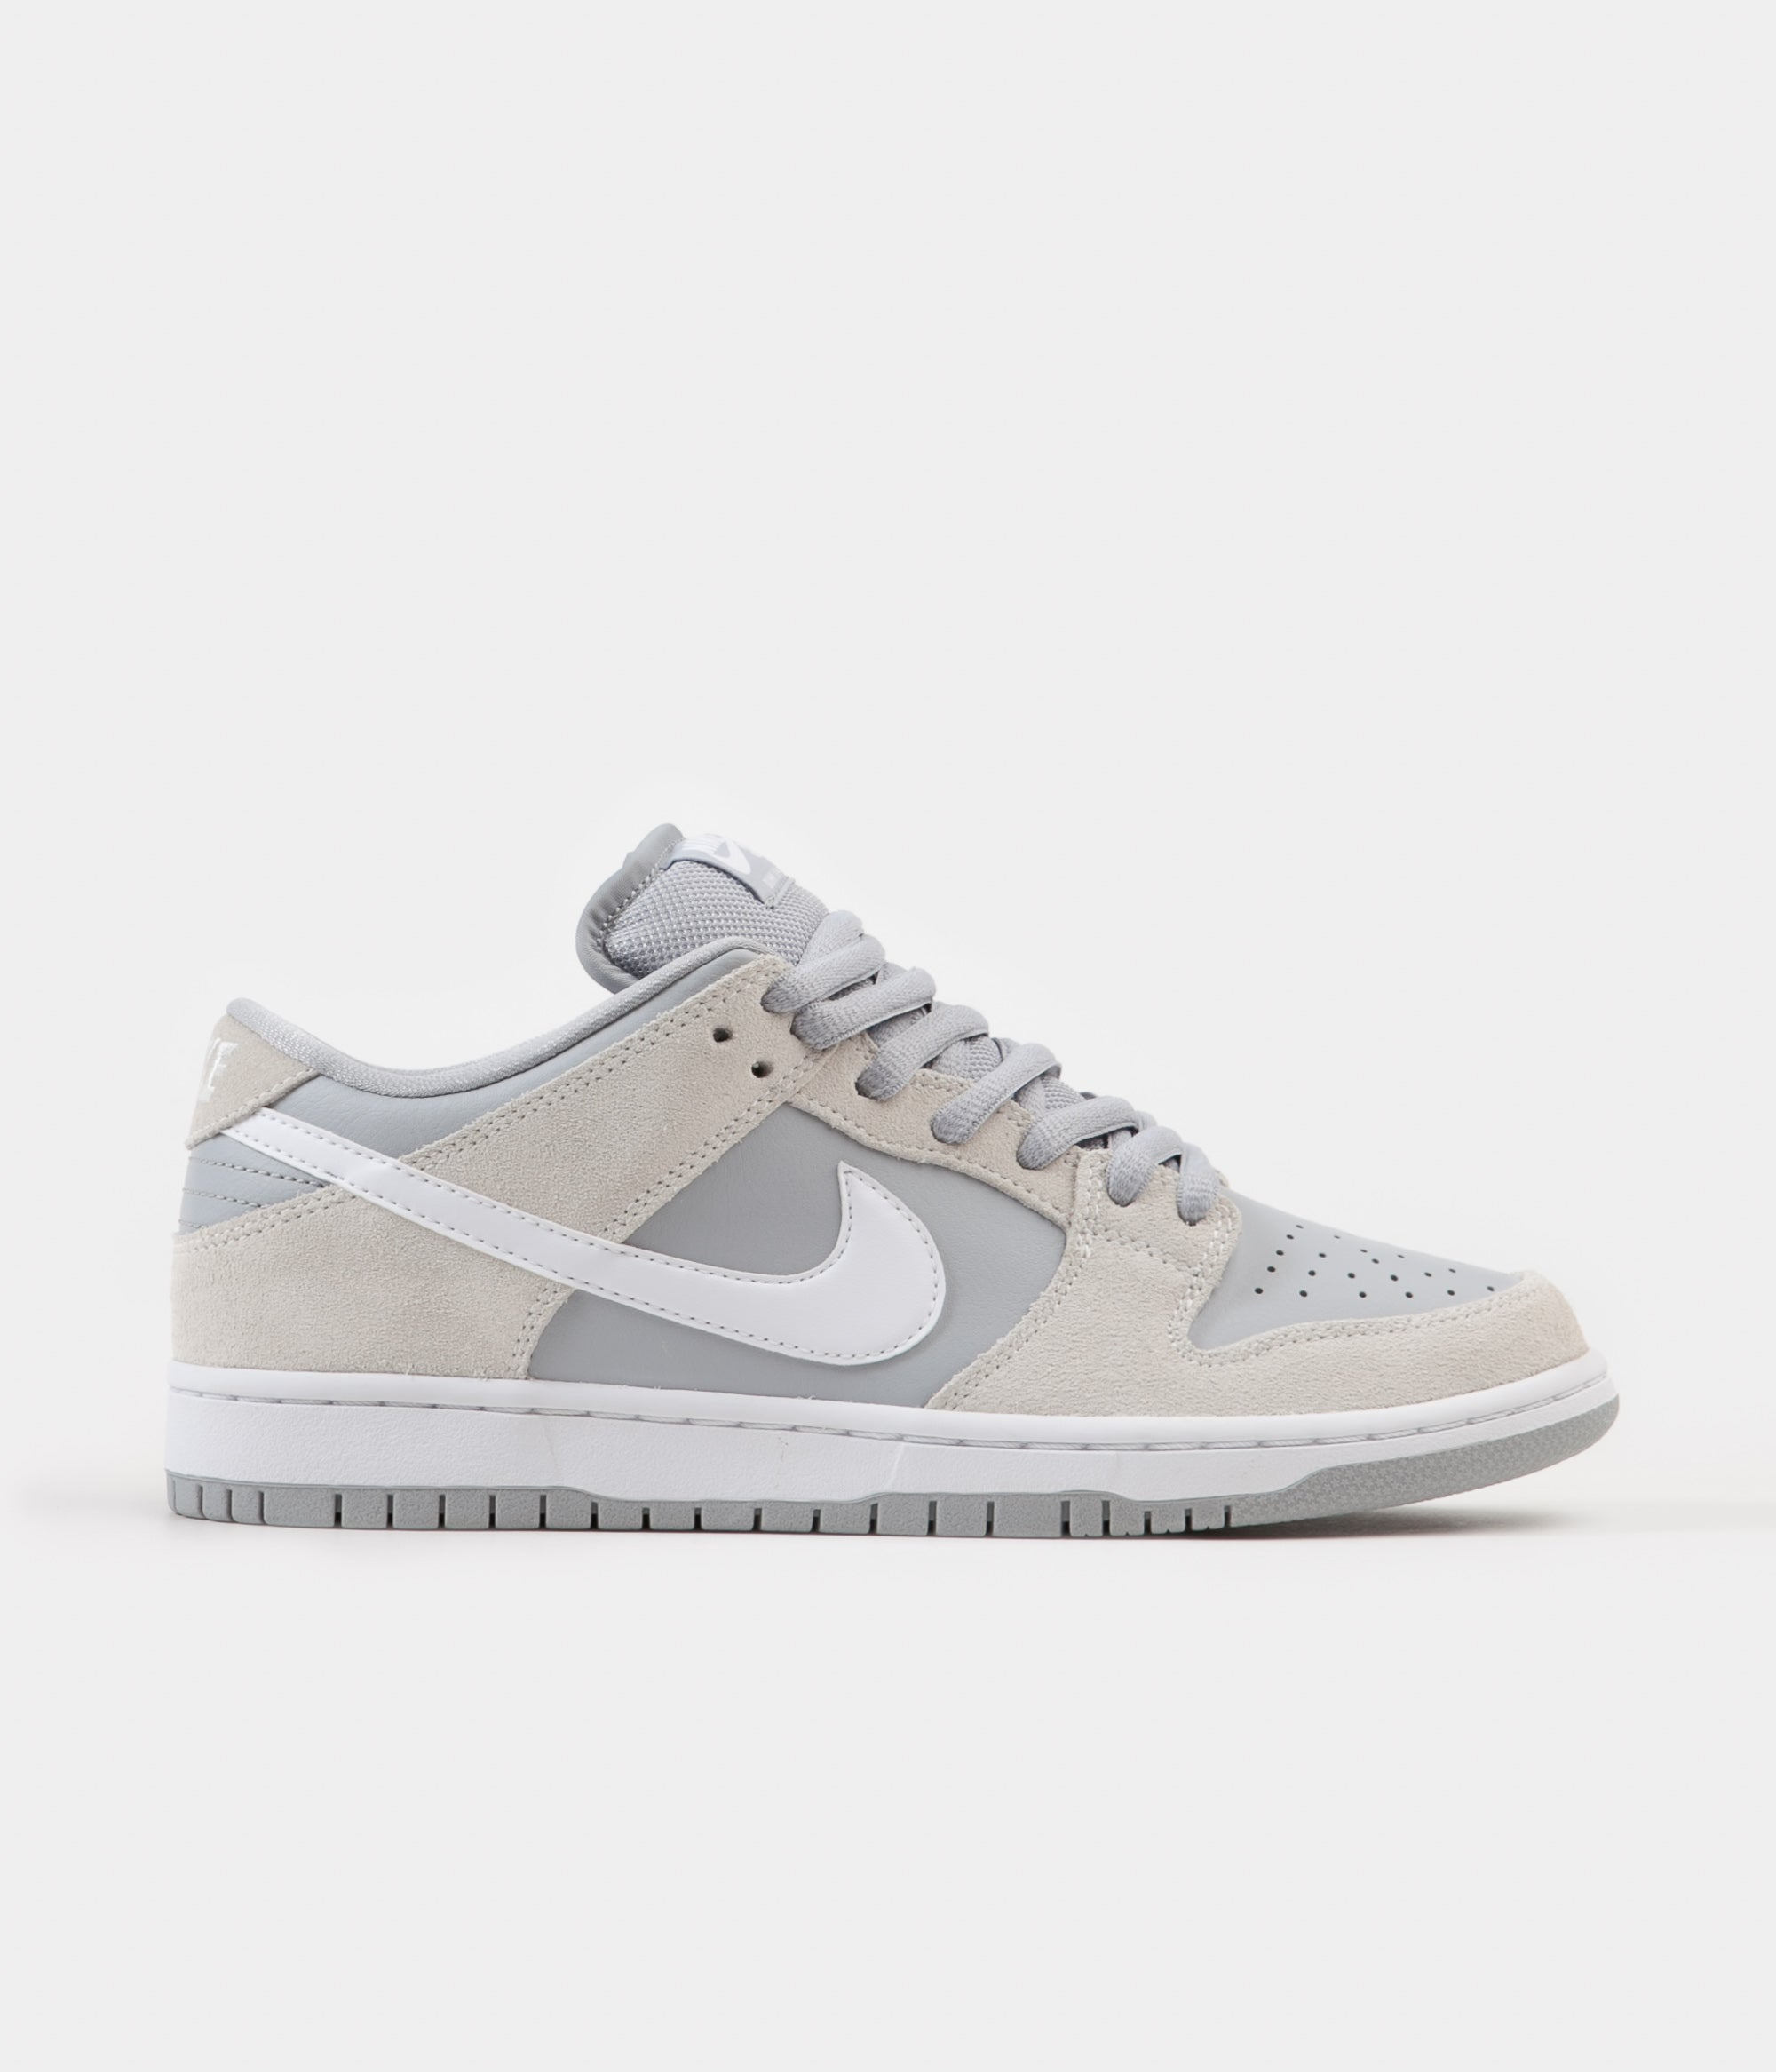 ... real nike sb dunk low trd shoes summit white white wolf grey white  a5be1 b4480 2b792c503